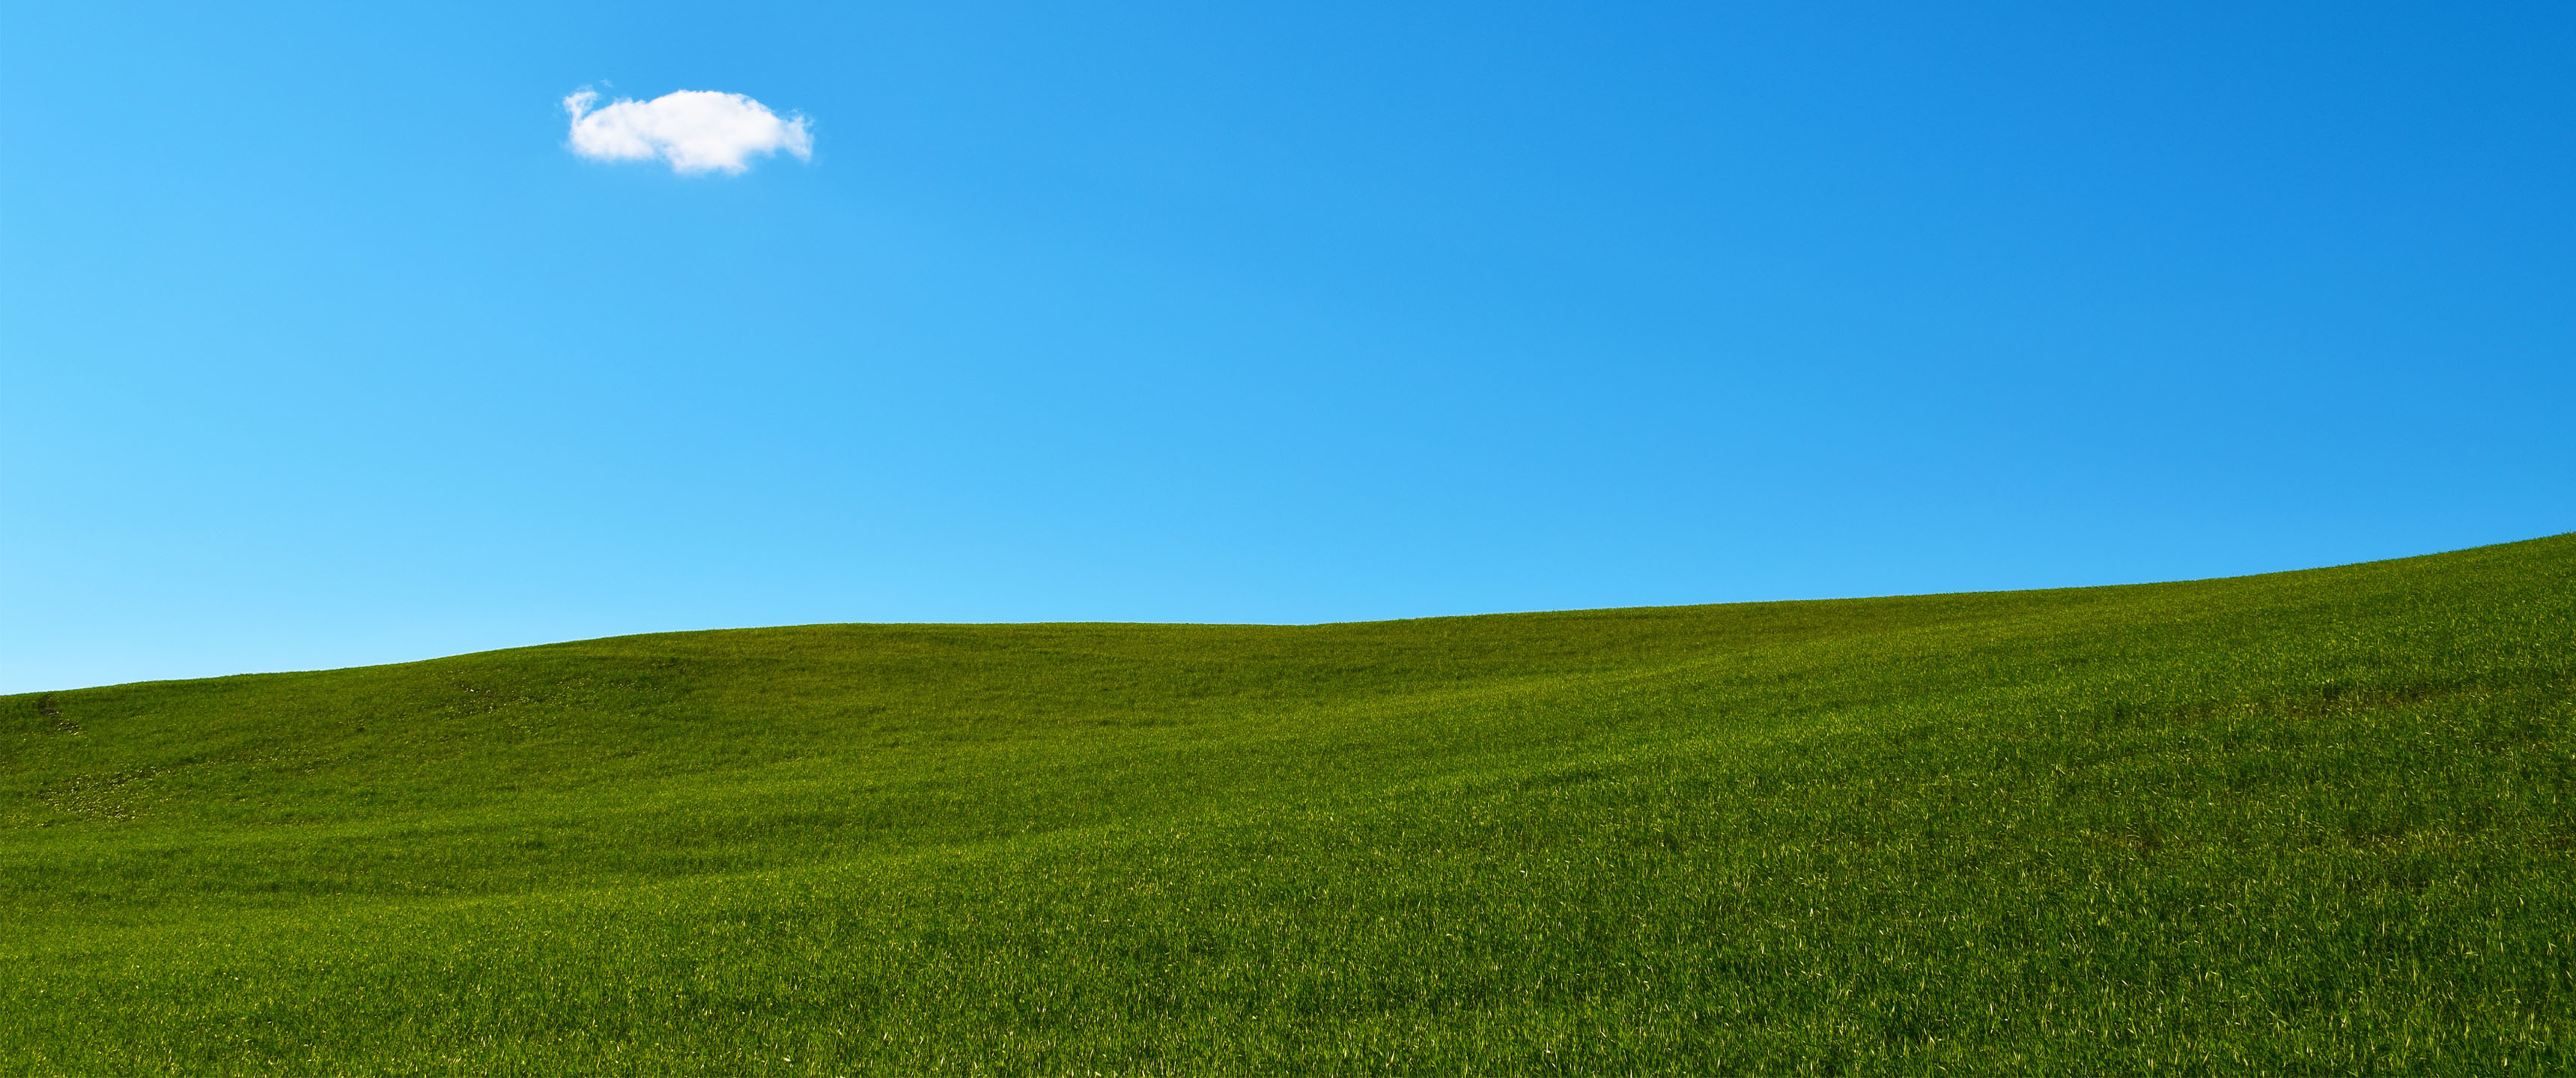 Blue And Green 21 9 Wallpaper Ultrawide Monitor 21 9